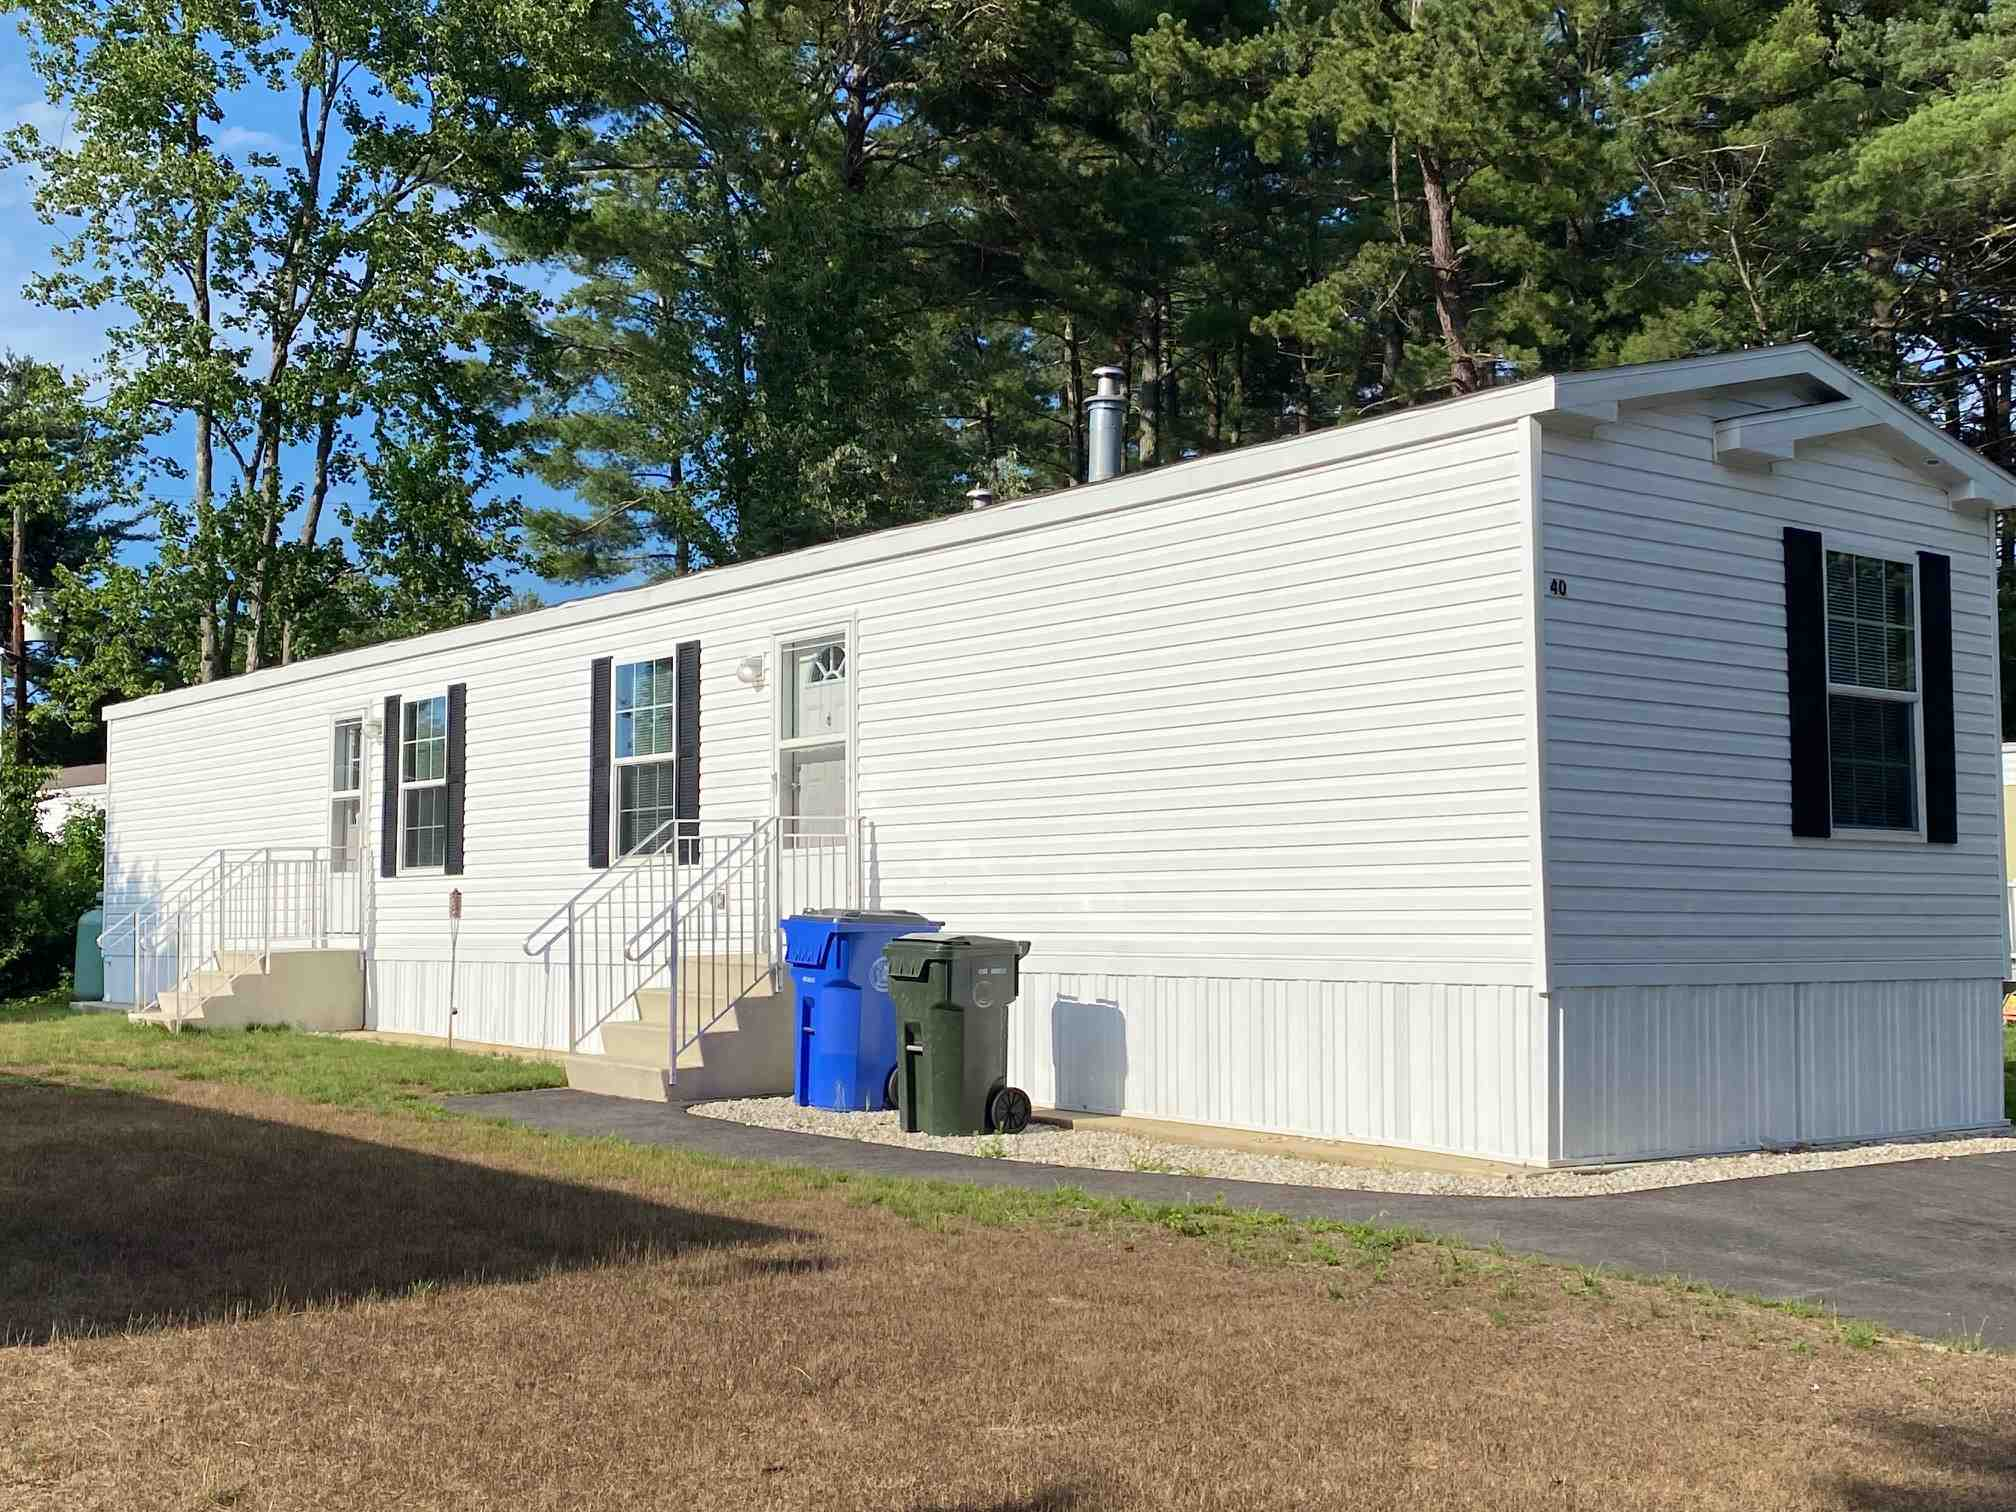 MLS 4818124: 40 Norwich Place, Londonderry NH